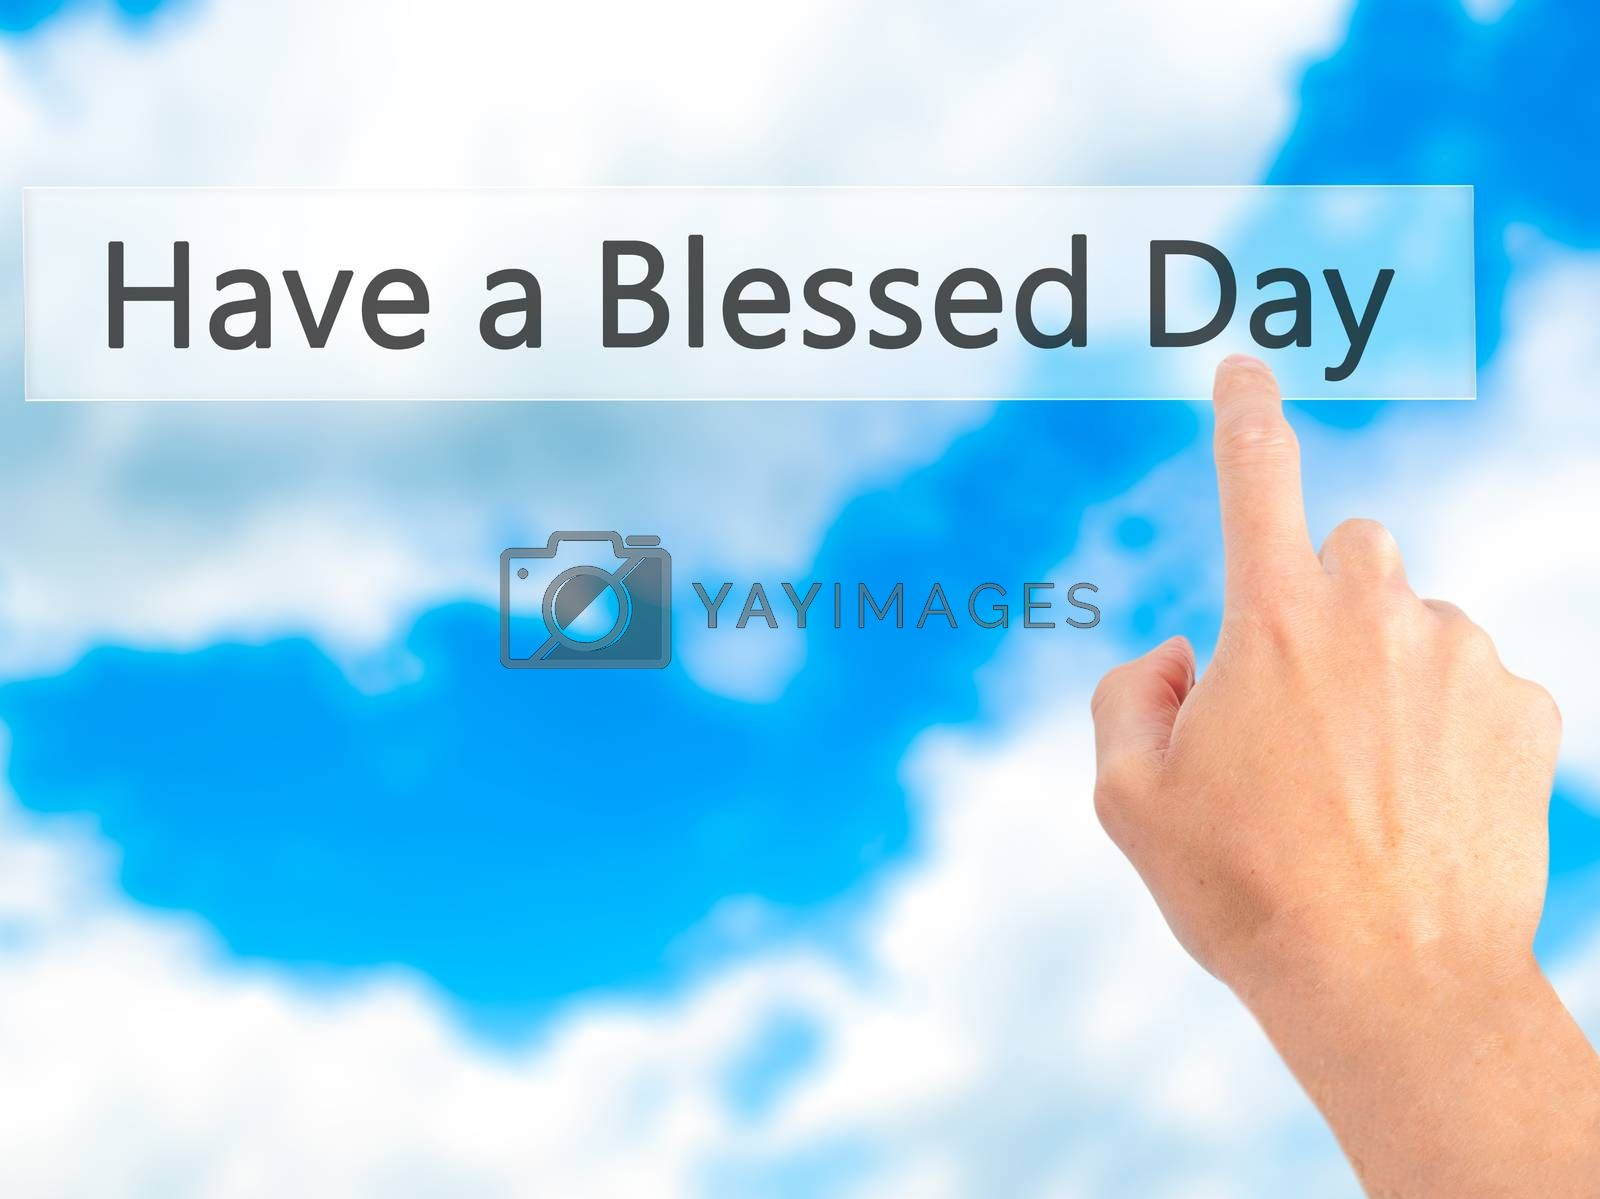 Have a Blessed Day - Hand pressing a button on blurred backgroun by netsay.net